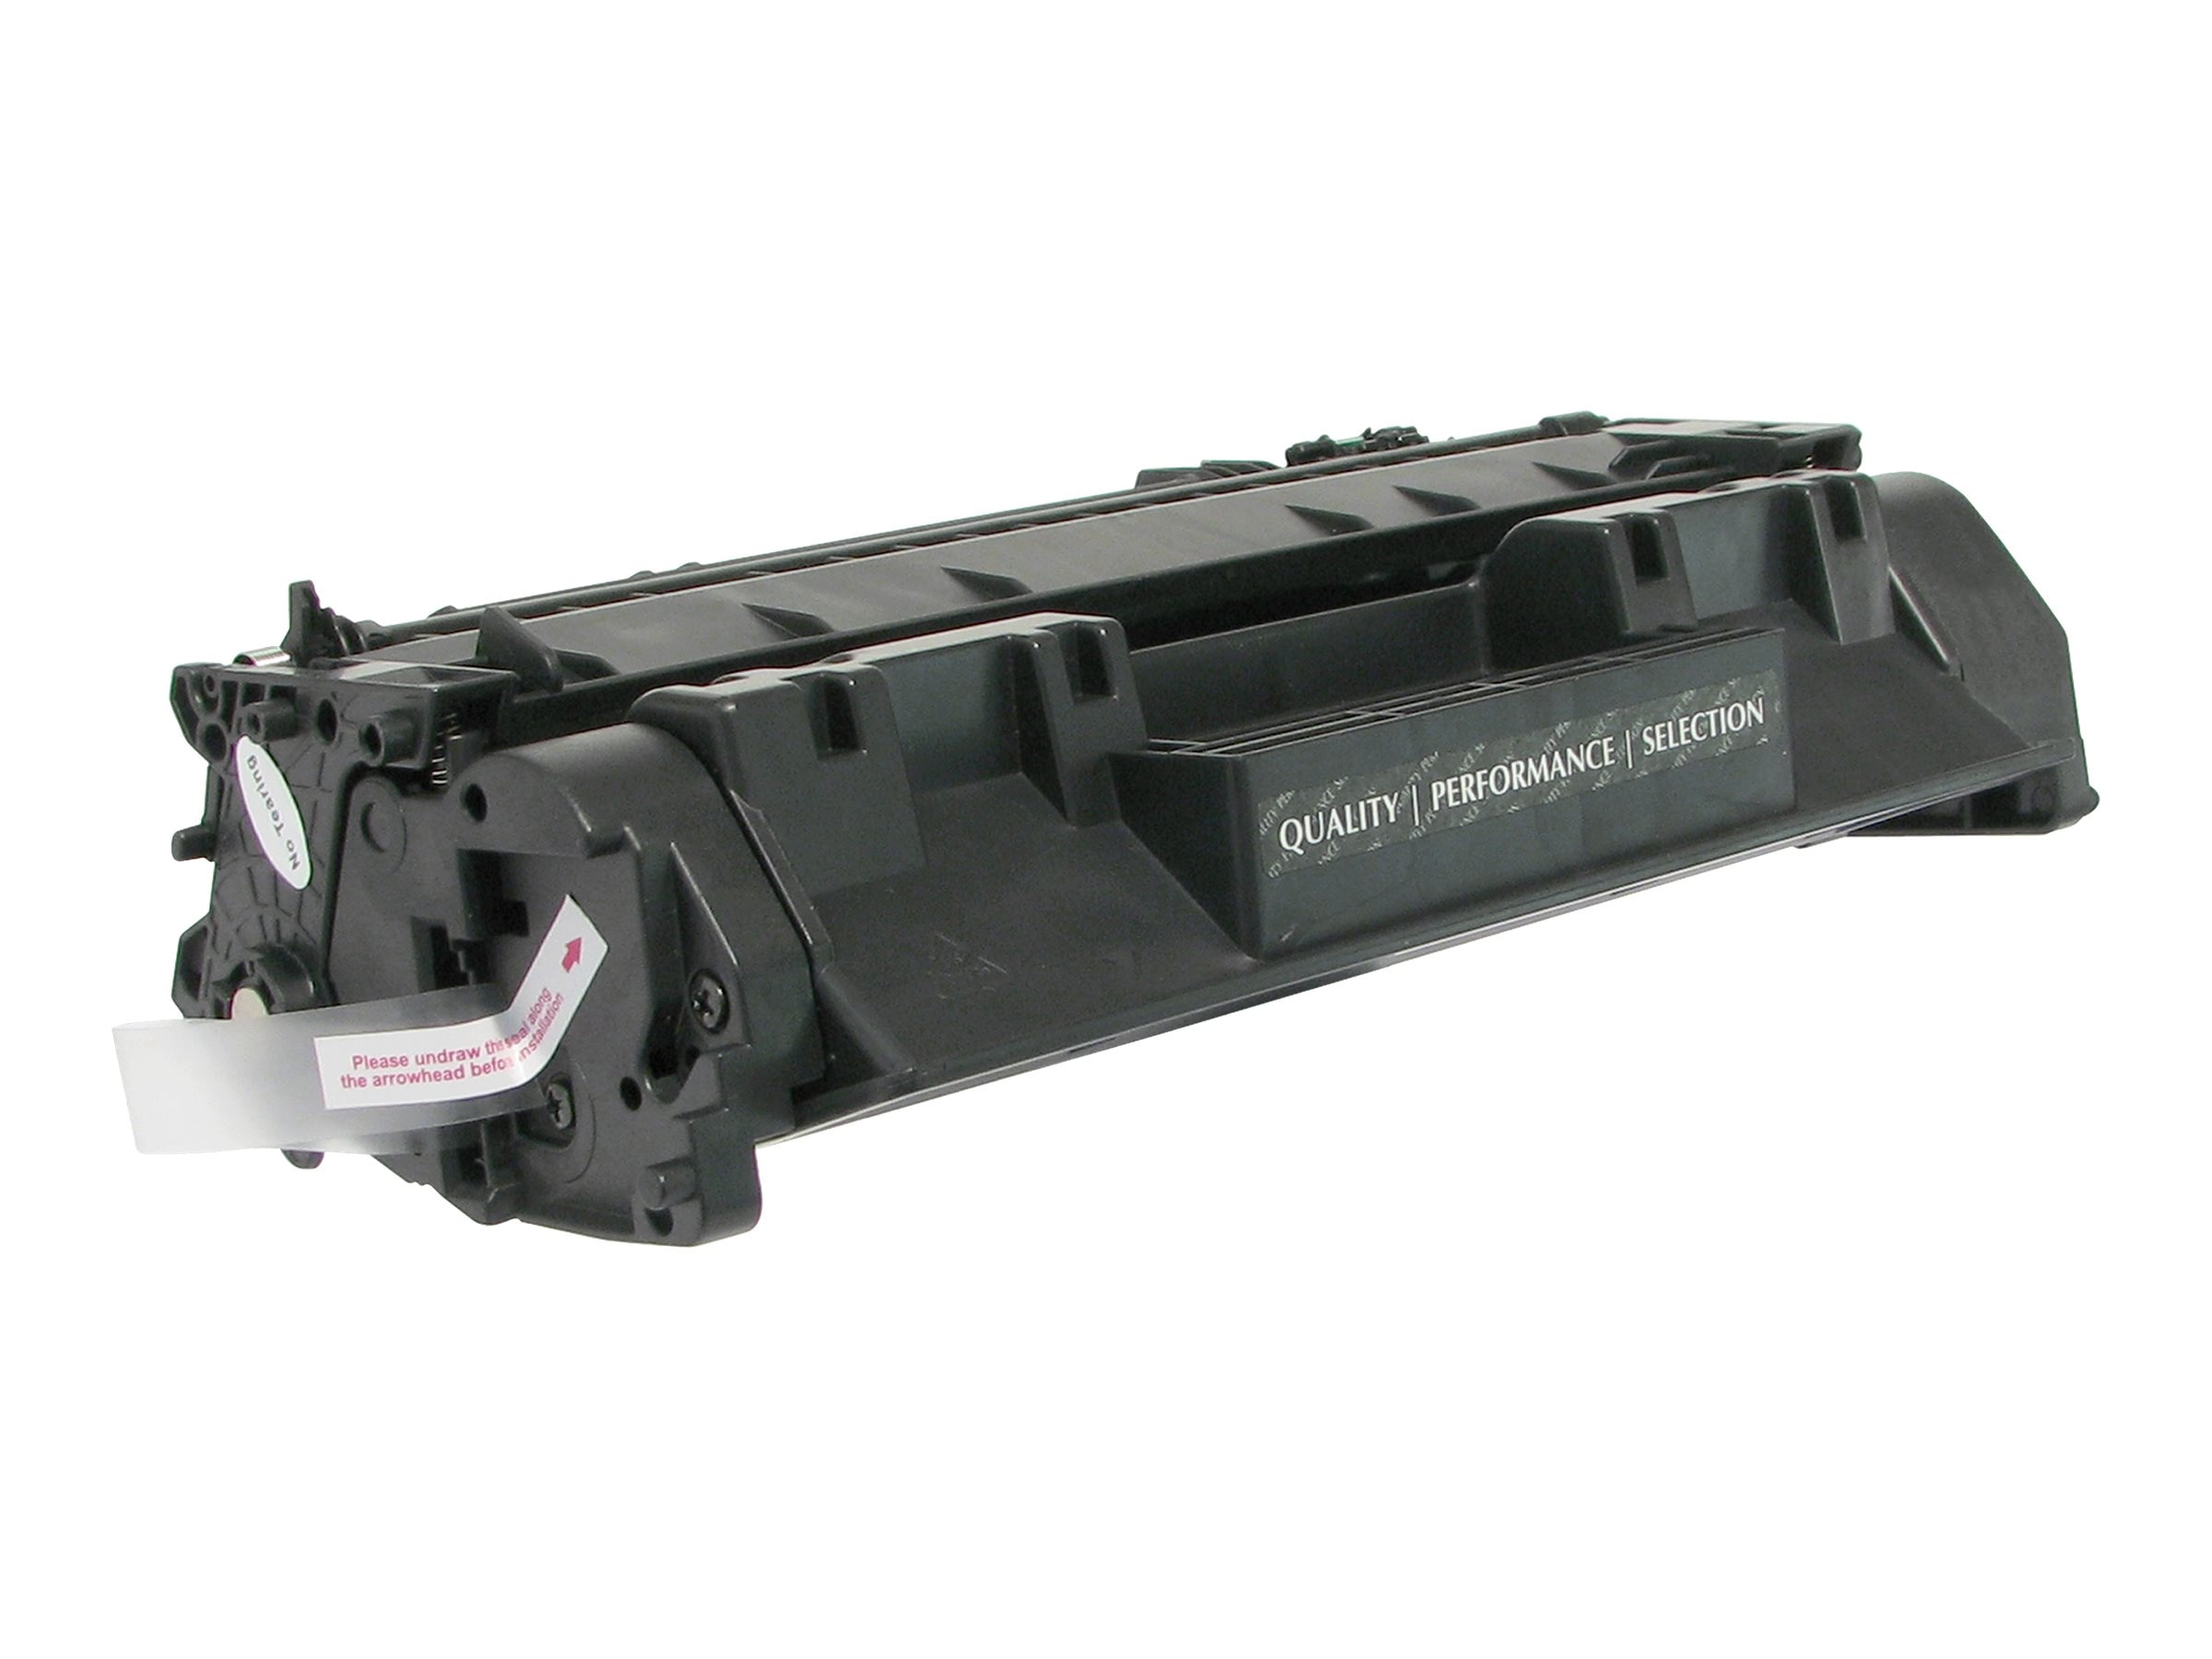 V7 CF280A Black Toner Cartridge for HP LaserJet Pro 400 M401 M425 Series